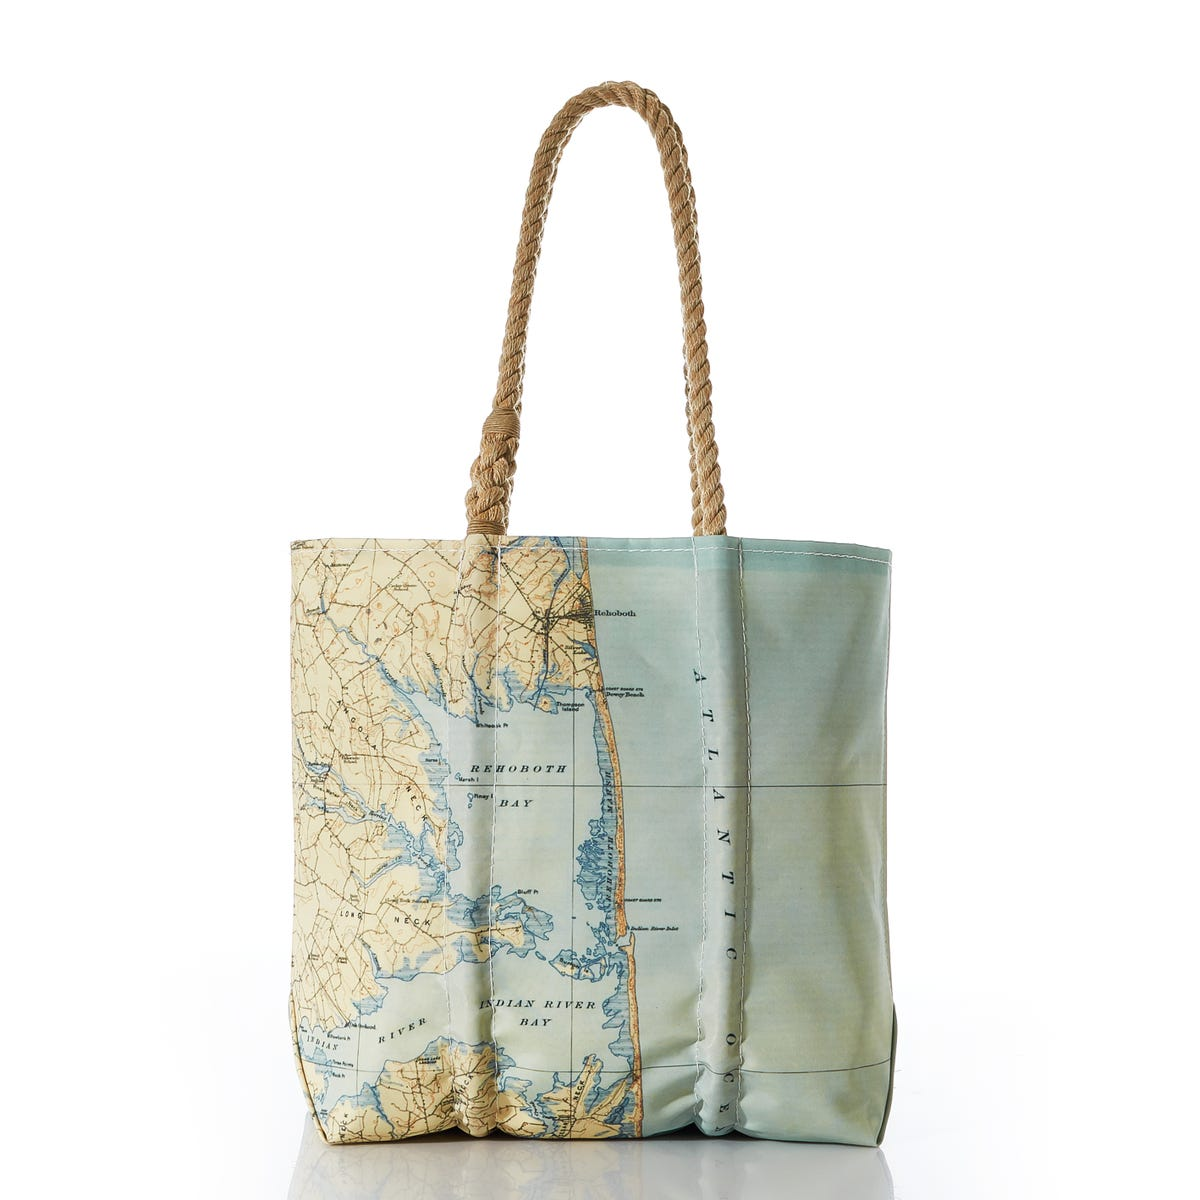 70cefb8de2fc New shop in Rehoboth turns old sails into handcrafted totes, bags